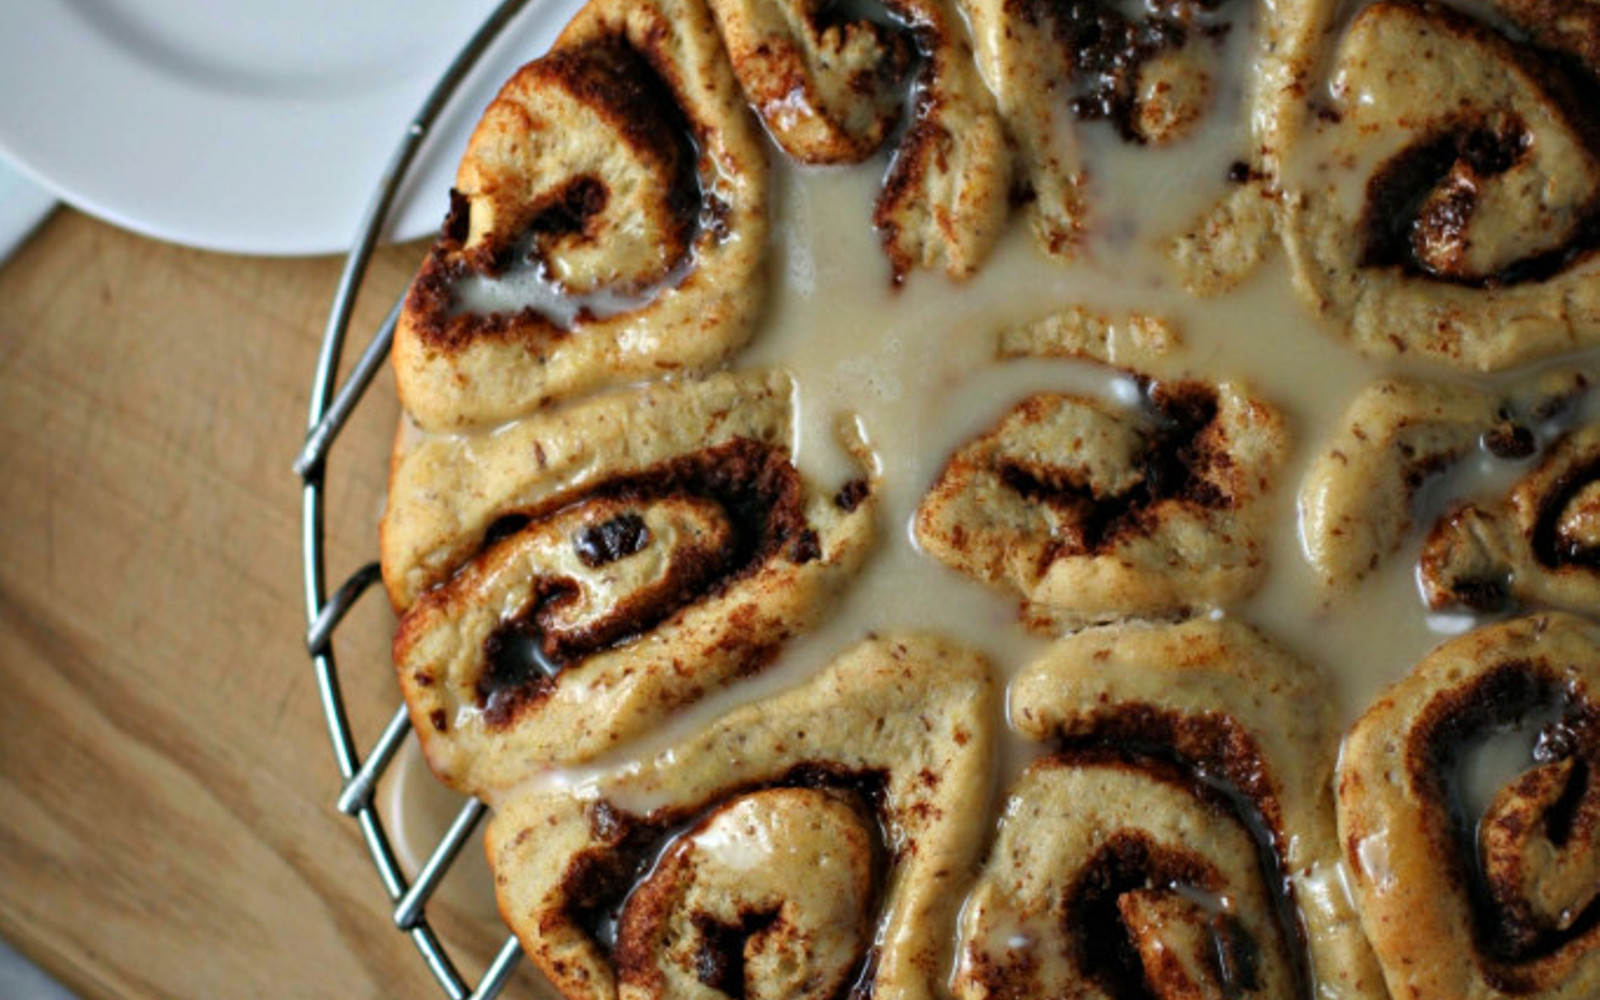 Vegan Maple Glazed Cinnamon Raisins Rolls close up with icing